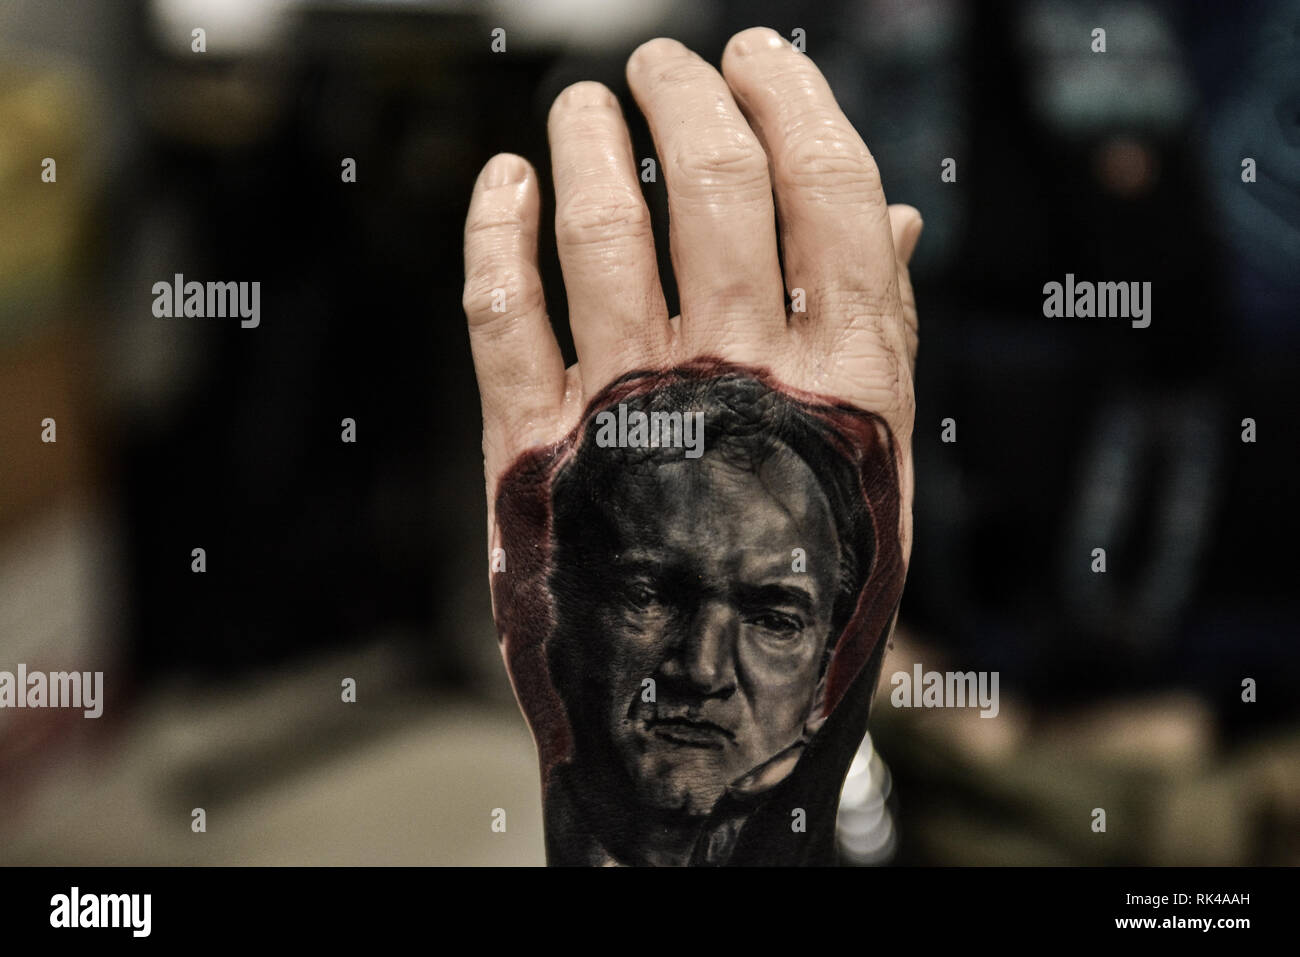 Milan Italy 08th Feb 2019 A Fake Hand With A Tattoo On